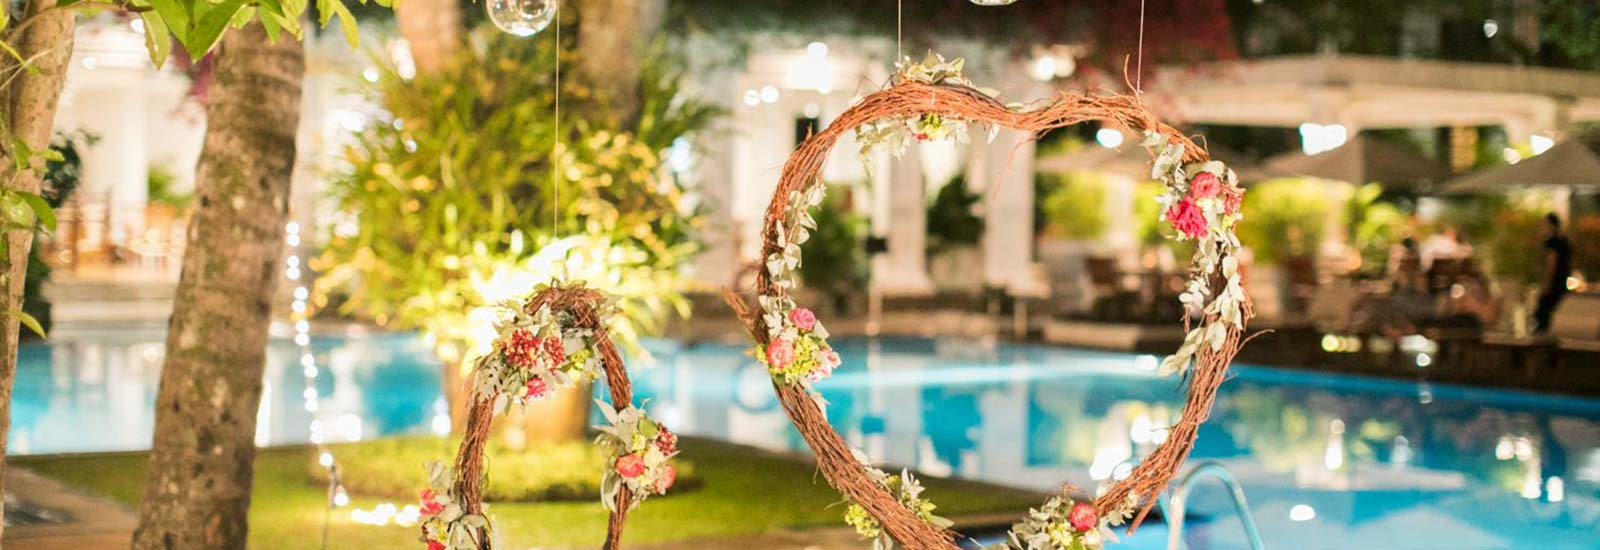 Night Outdoor Wedding Arrangements at Mahaweli Reach Hotel